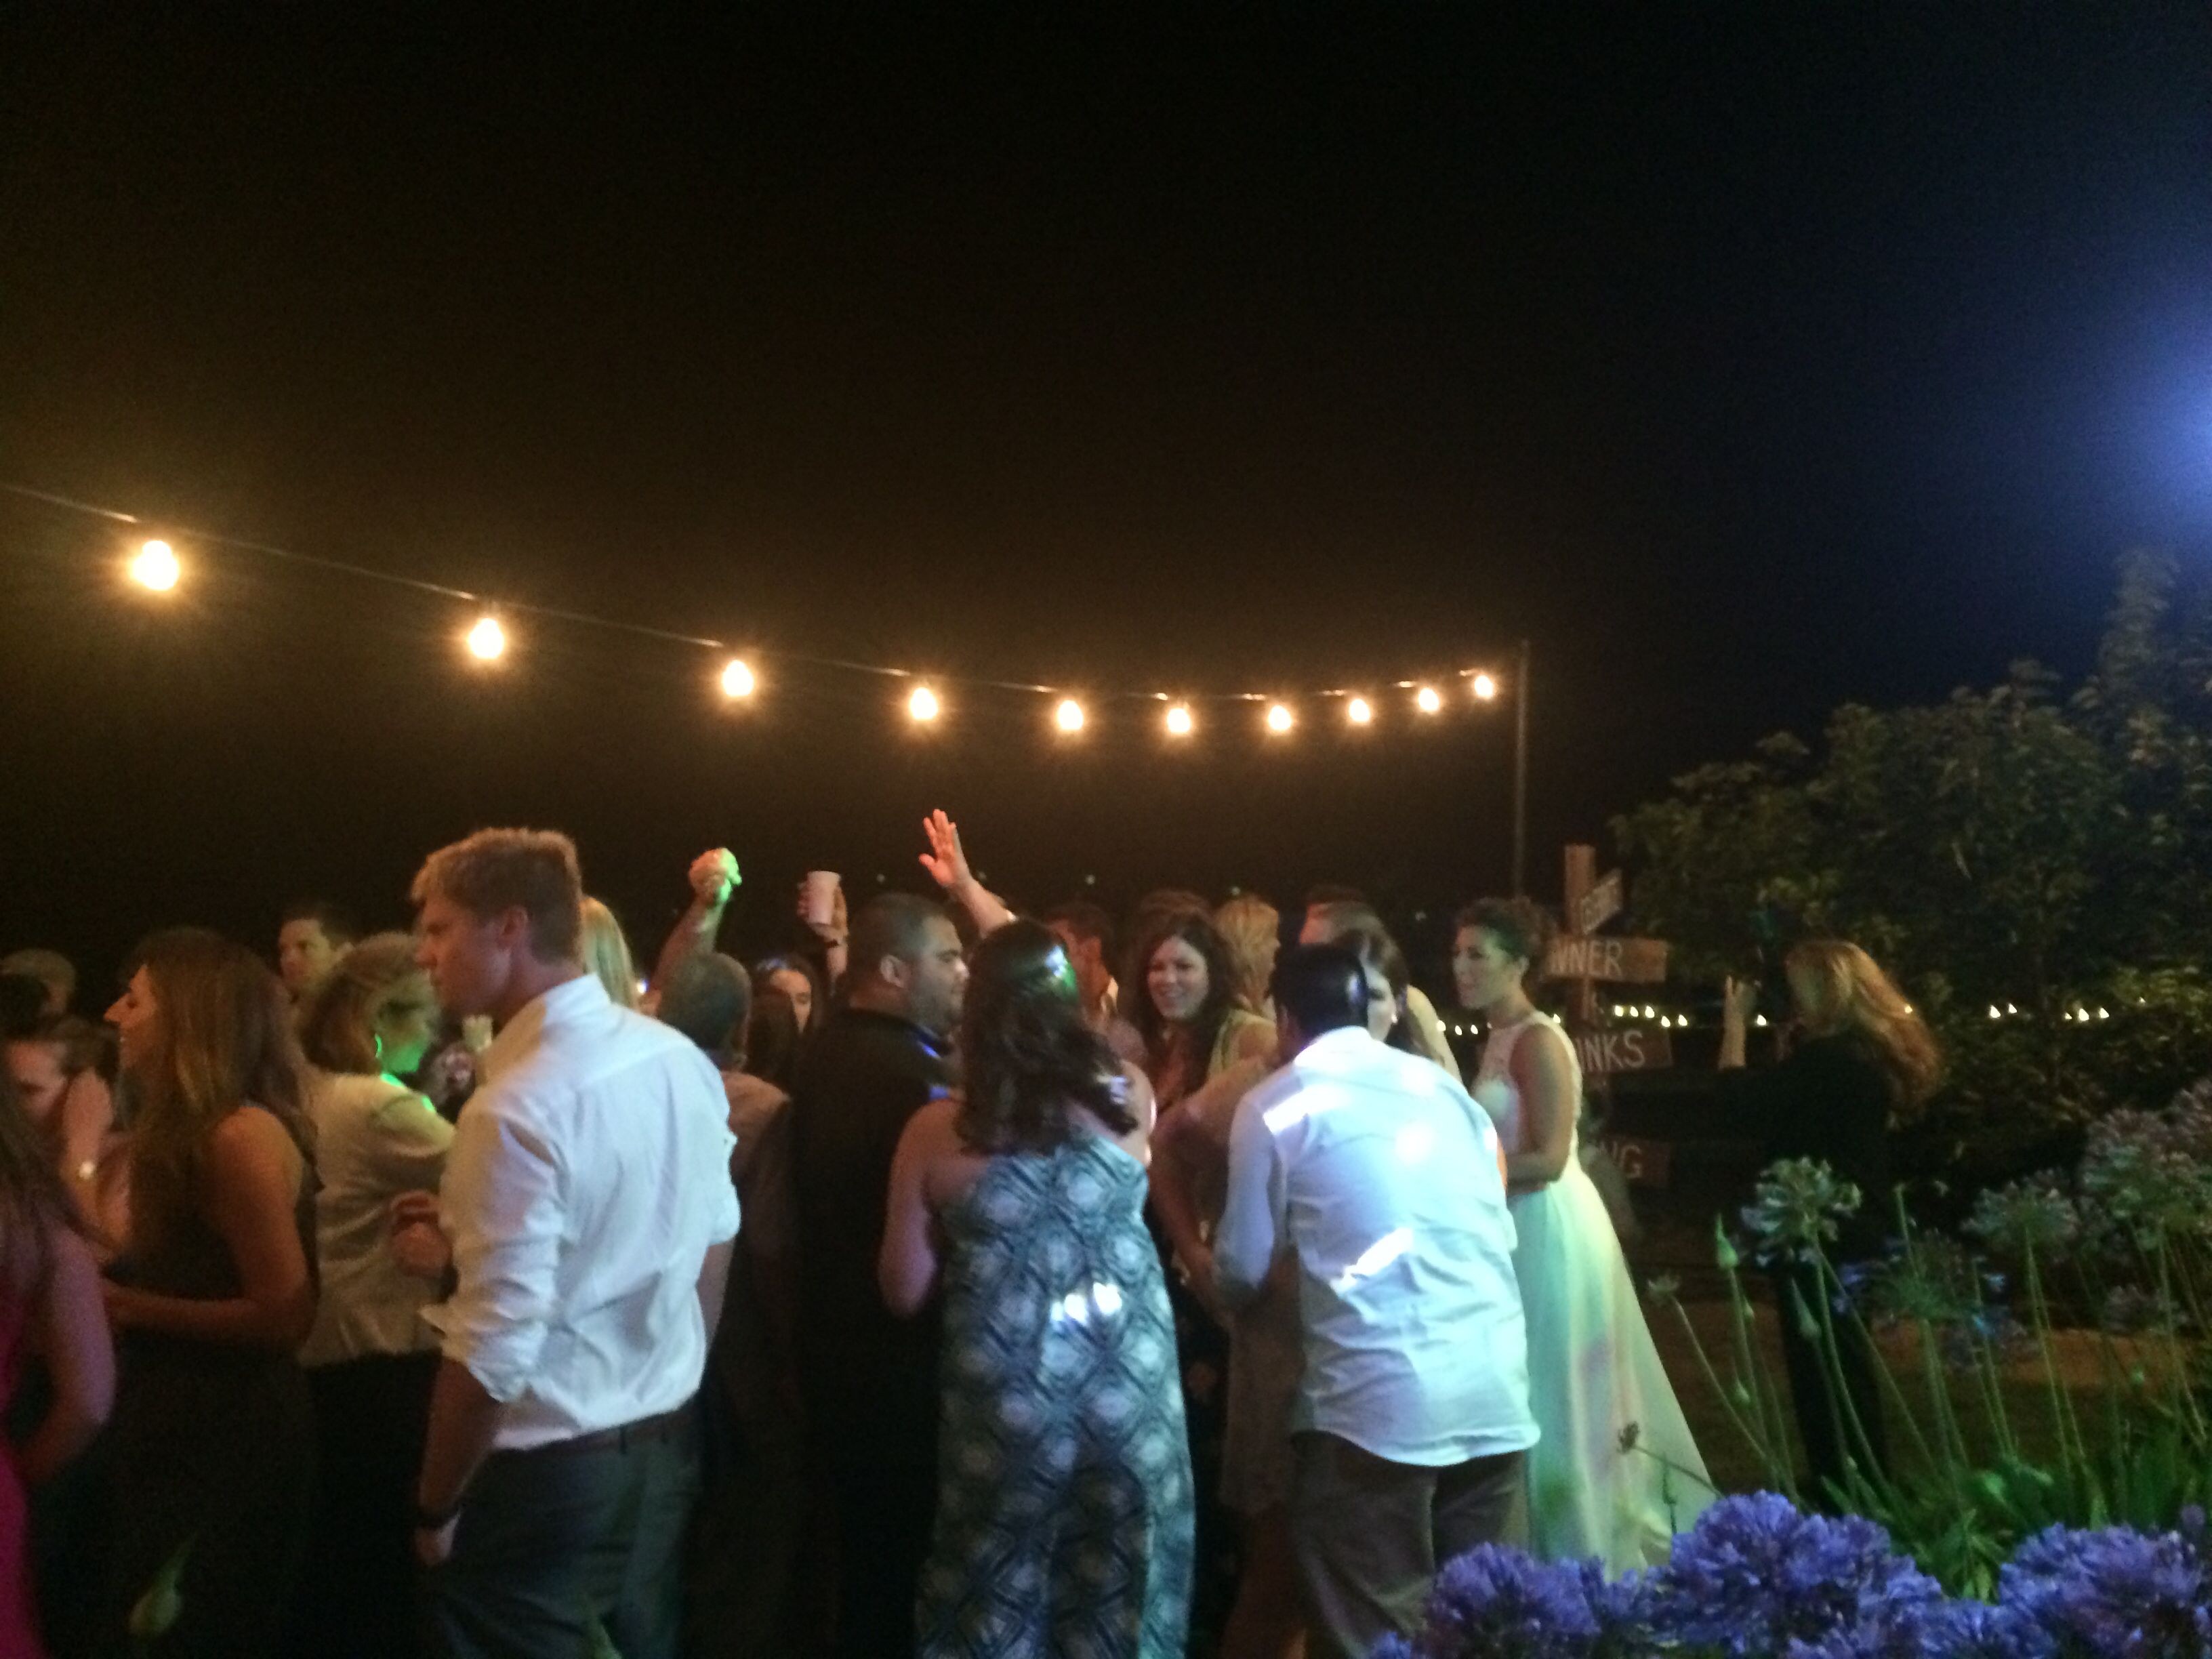 Wedding - Atascadero, Ca - Call Kevin for booking info 805-369-3299